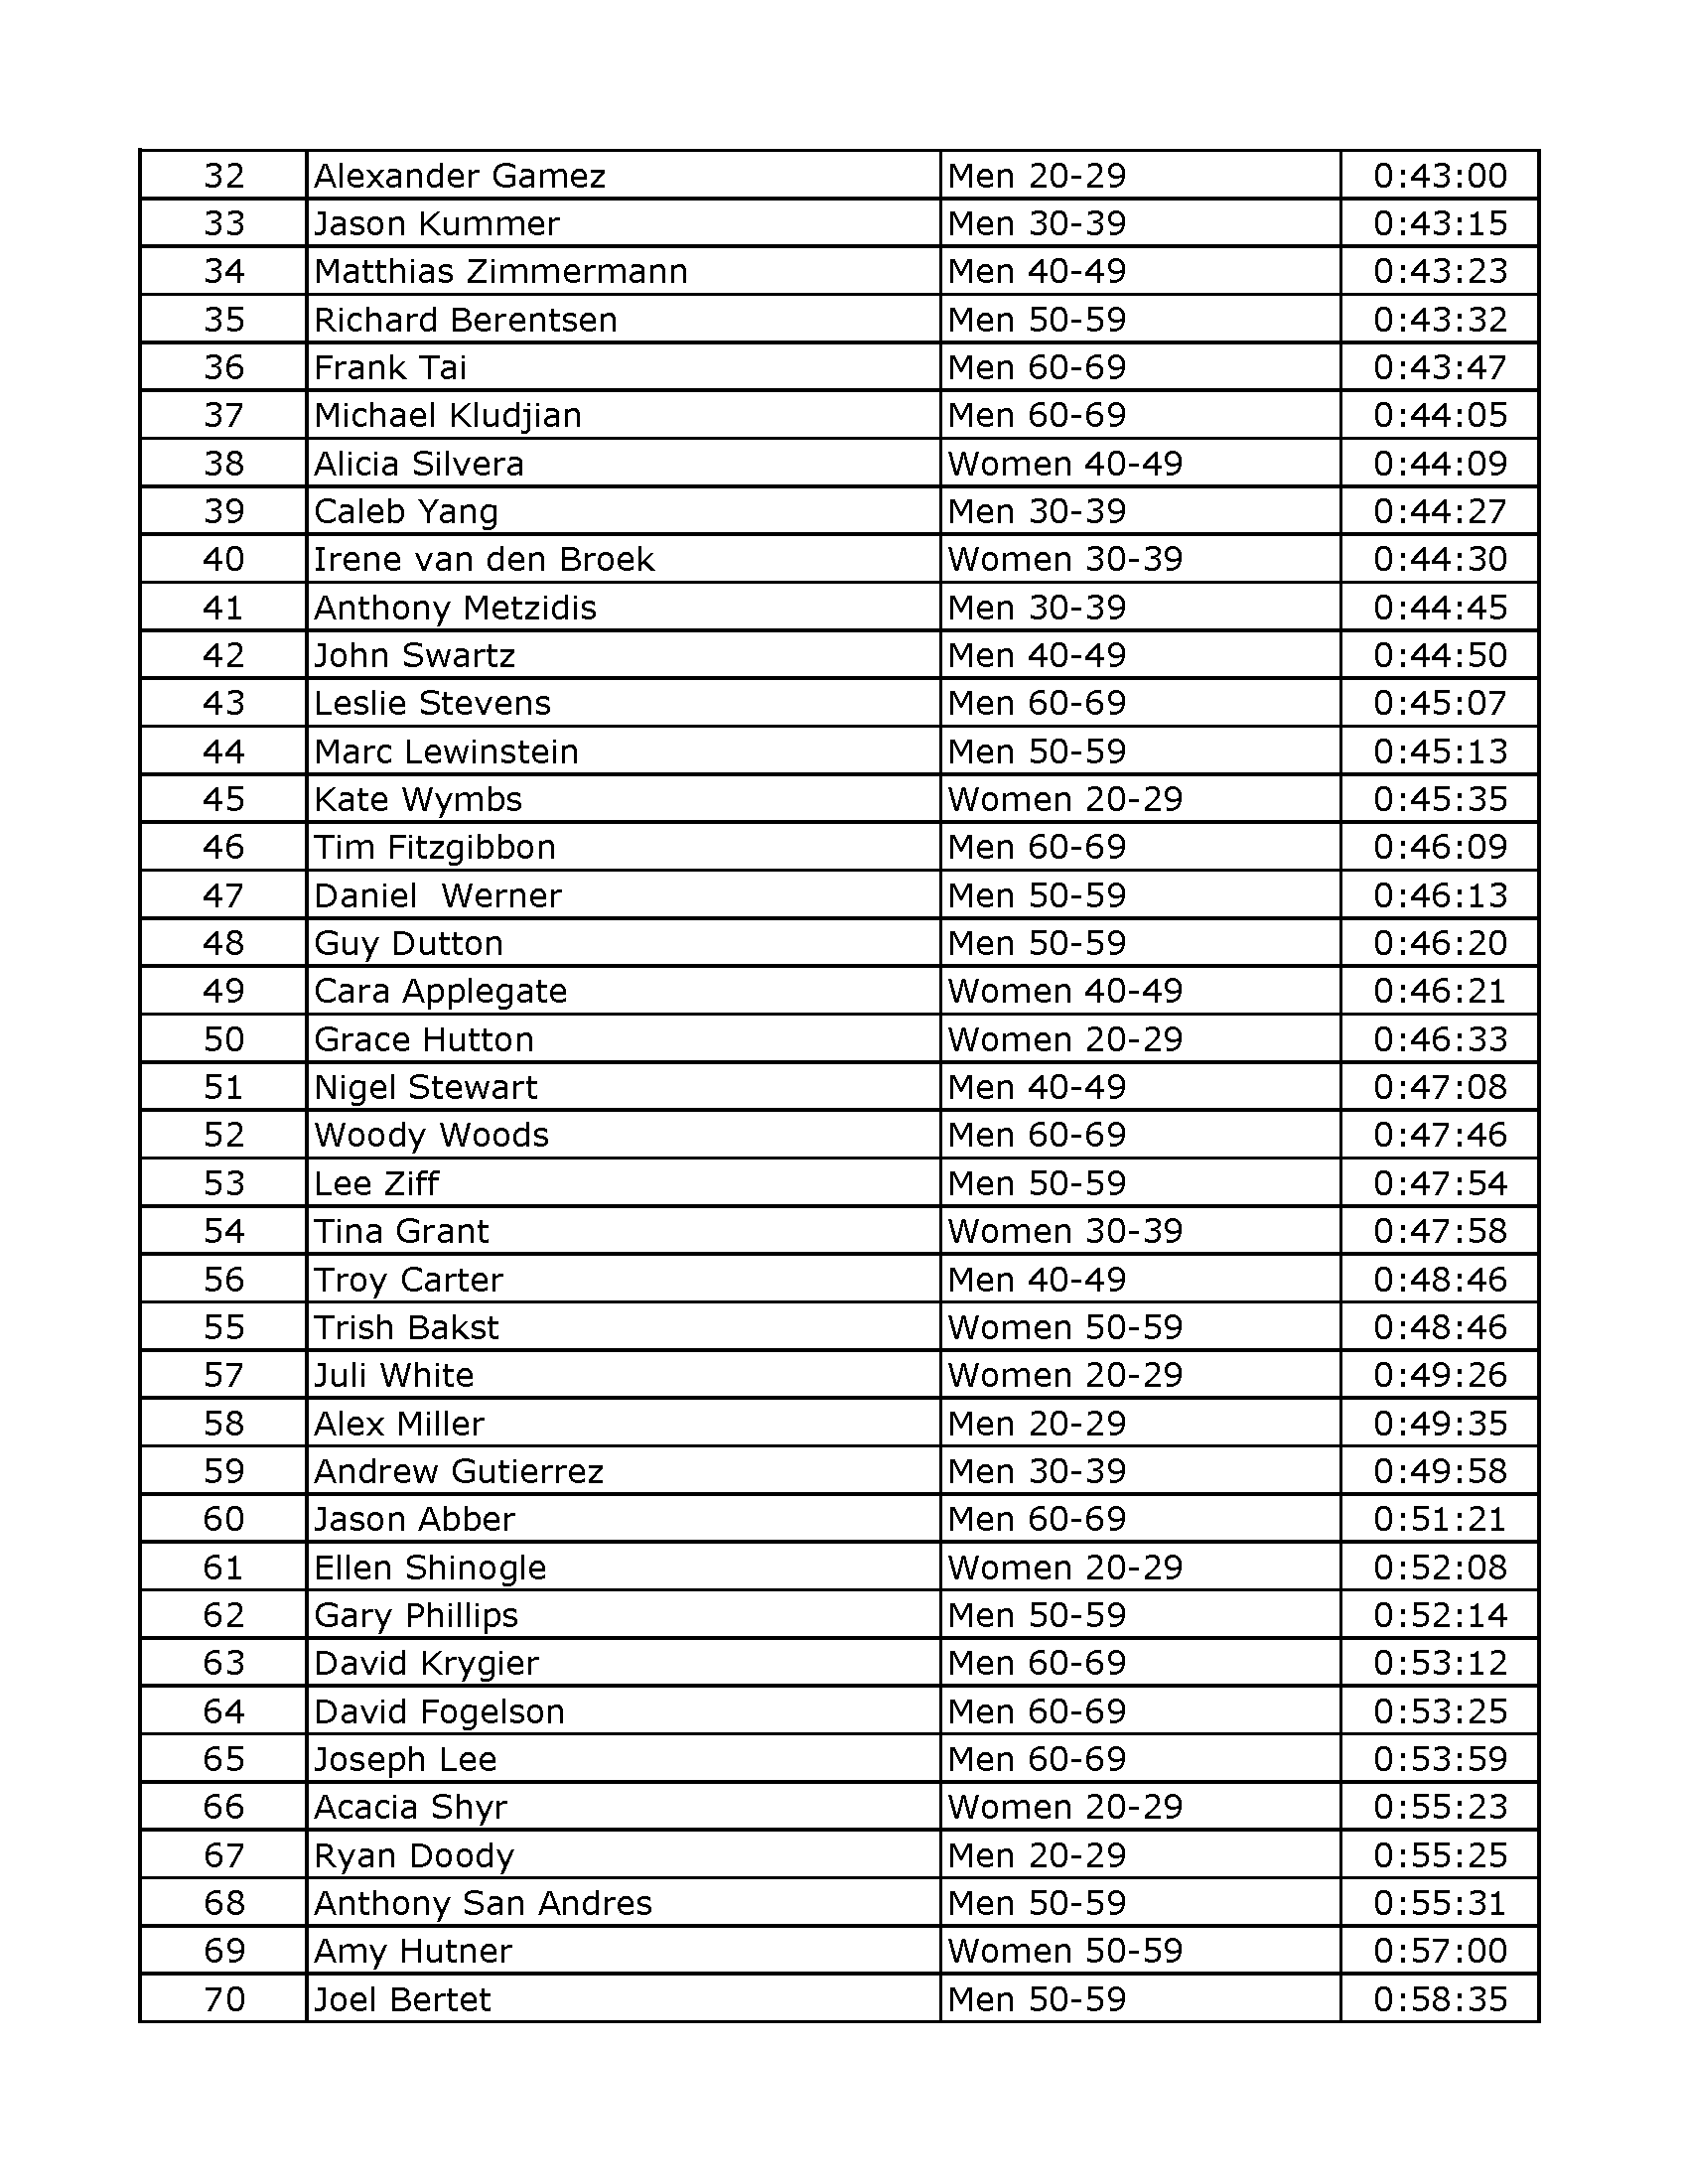 2017 Piuma results (9-17-17)_Page_5.png